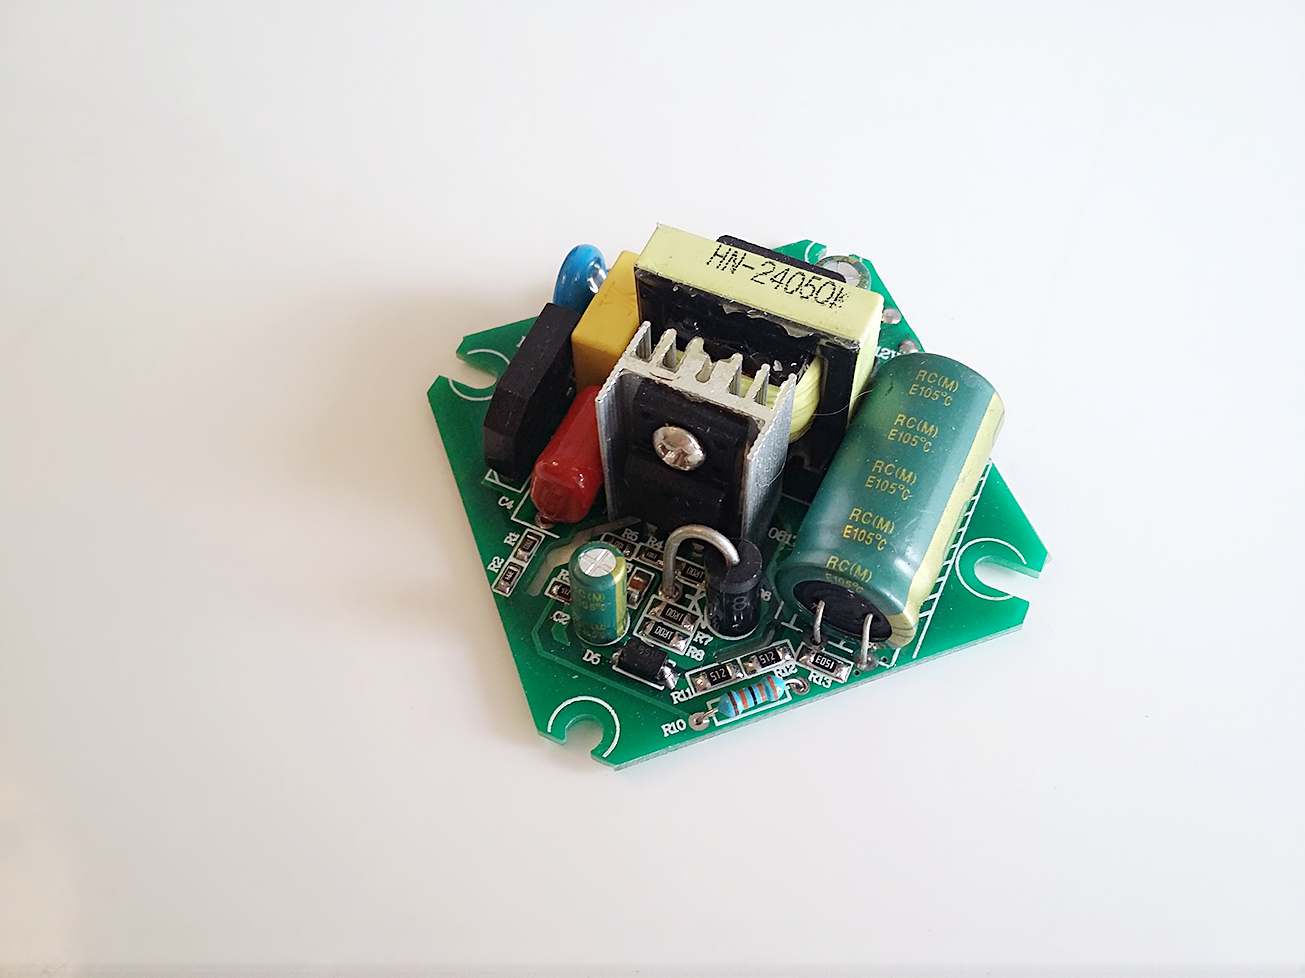 LED drivers for PAR cans AC 180-260V, 30W, DC 45-60V 500mA